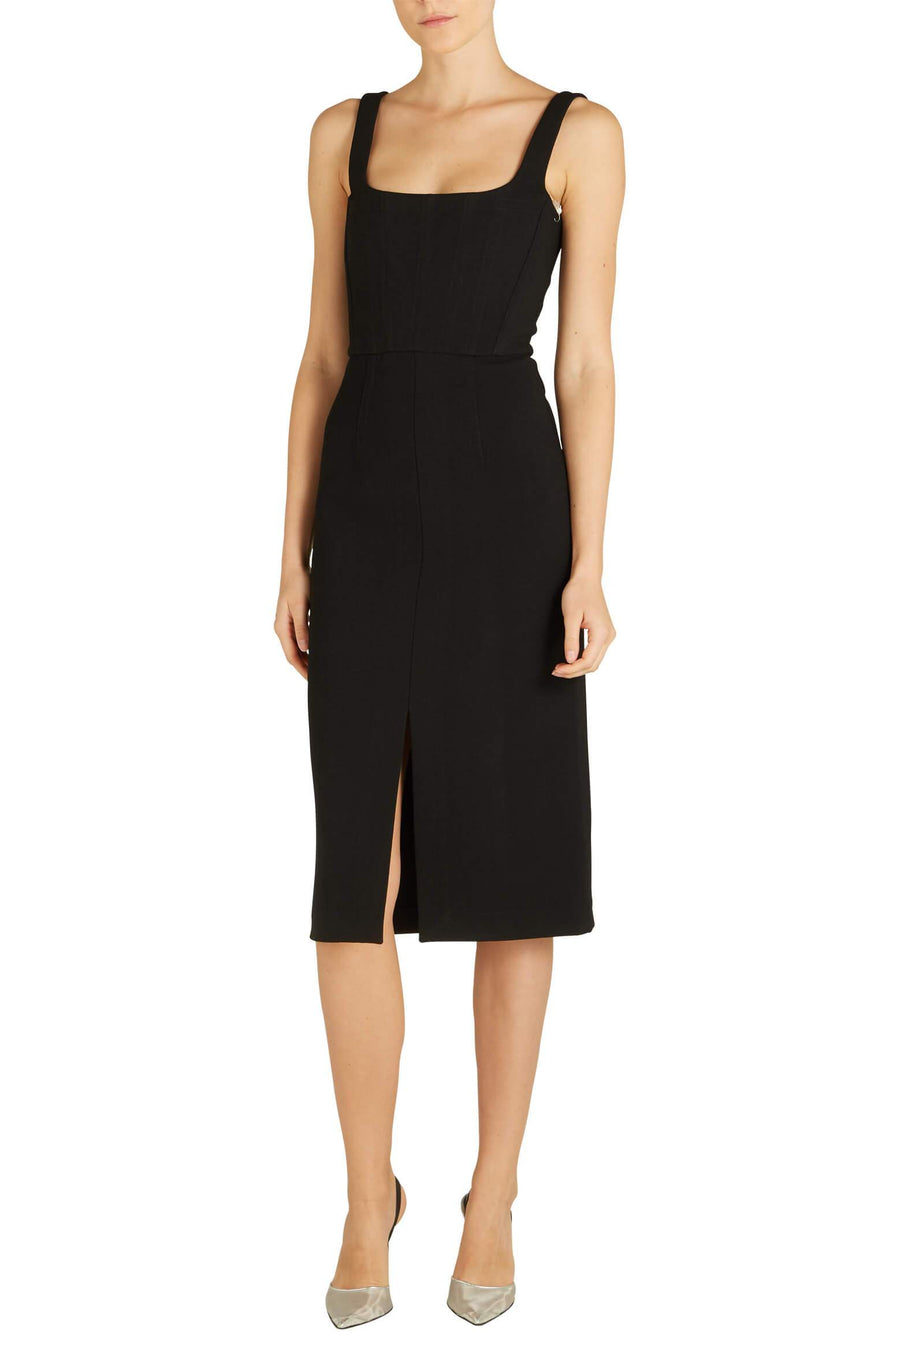 Dion Lee Truss Corset Dress in black from The New Trend